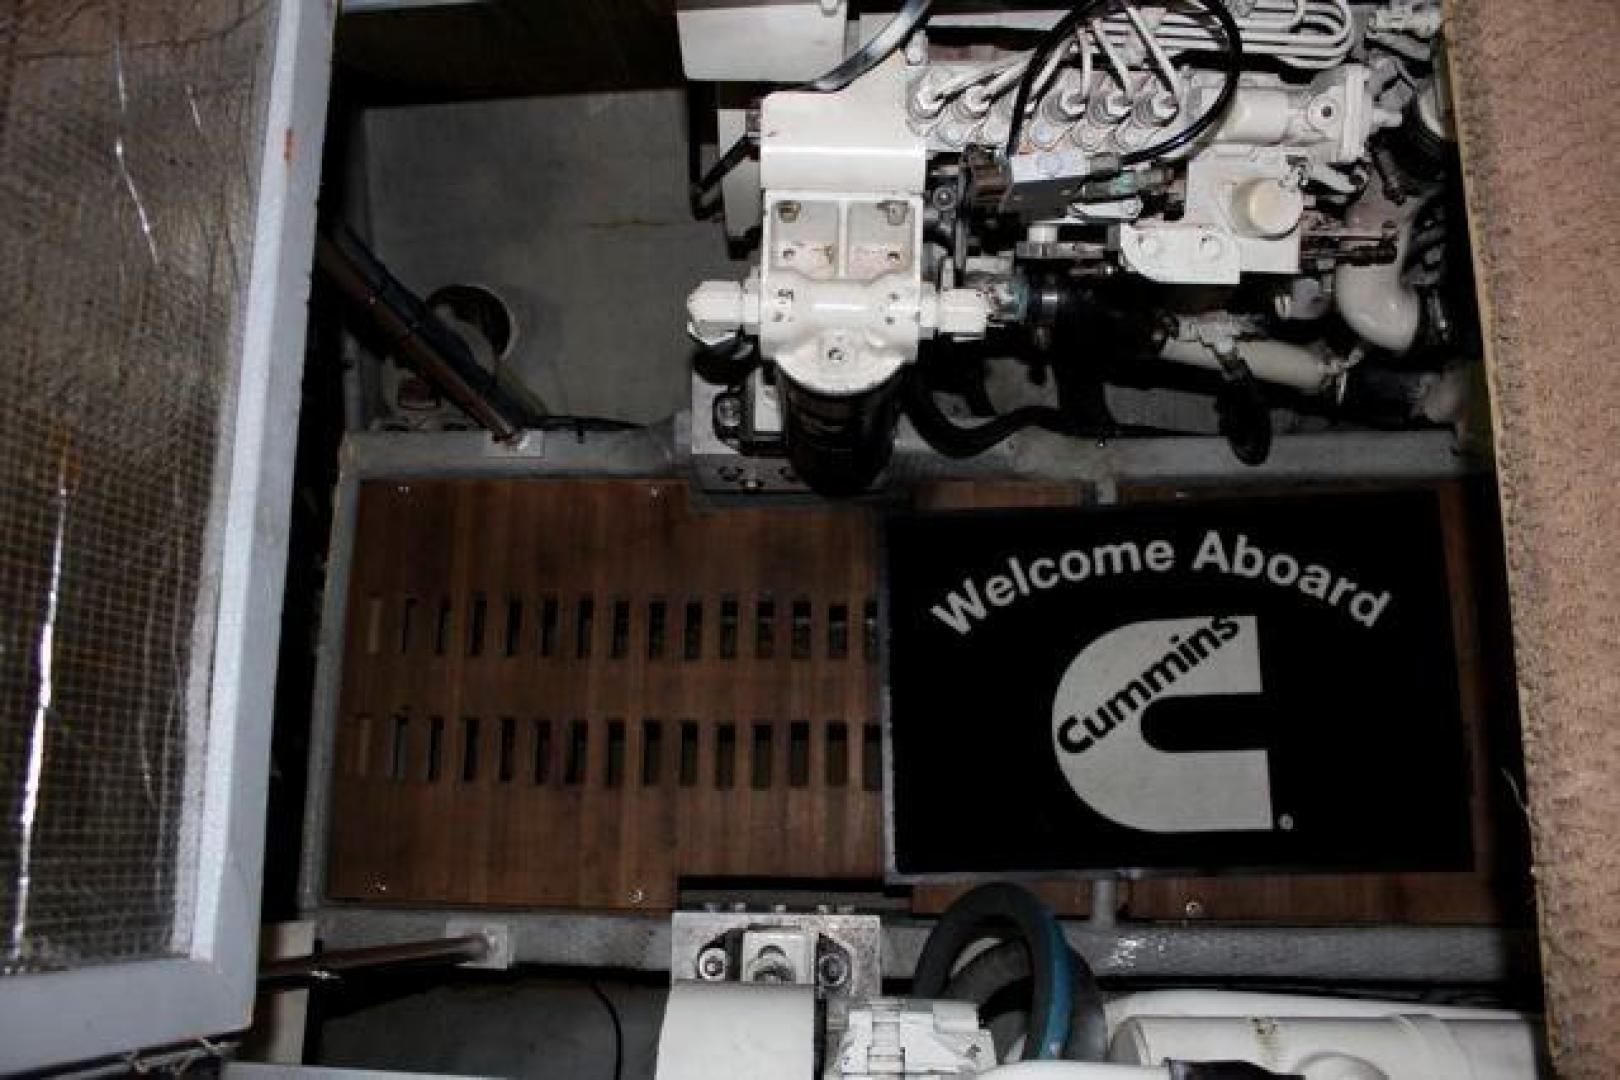 Luhrs-40 Convertible 1999-Seagar Time Pompano Beach-Florida-United States-Engine Room-923960 | Thumbnail